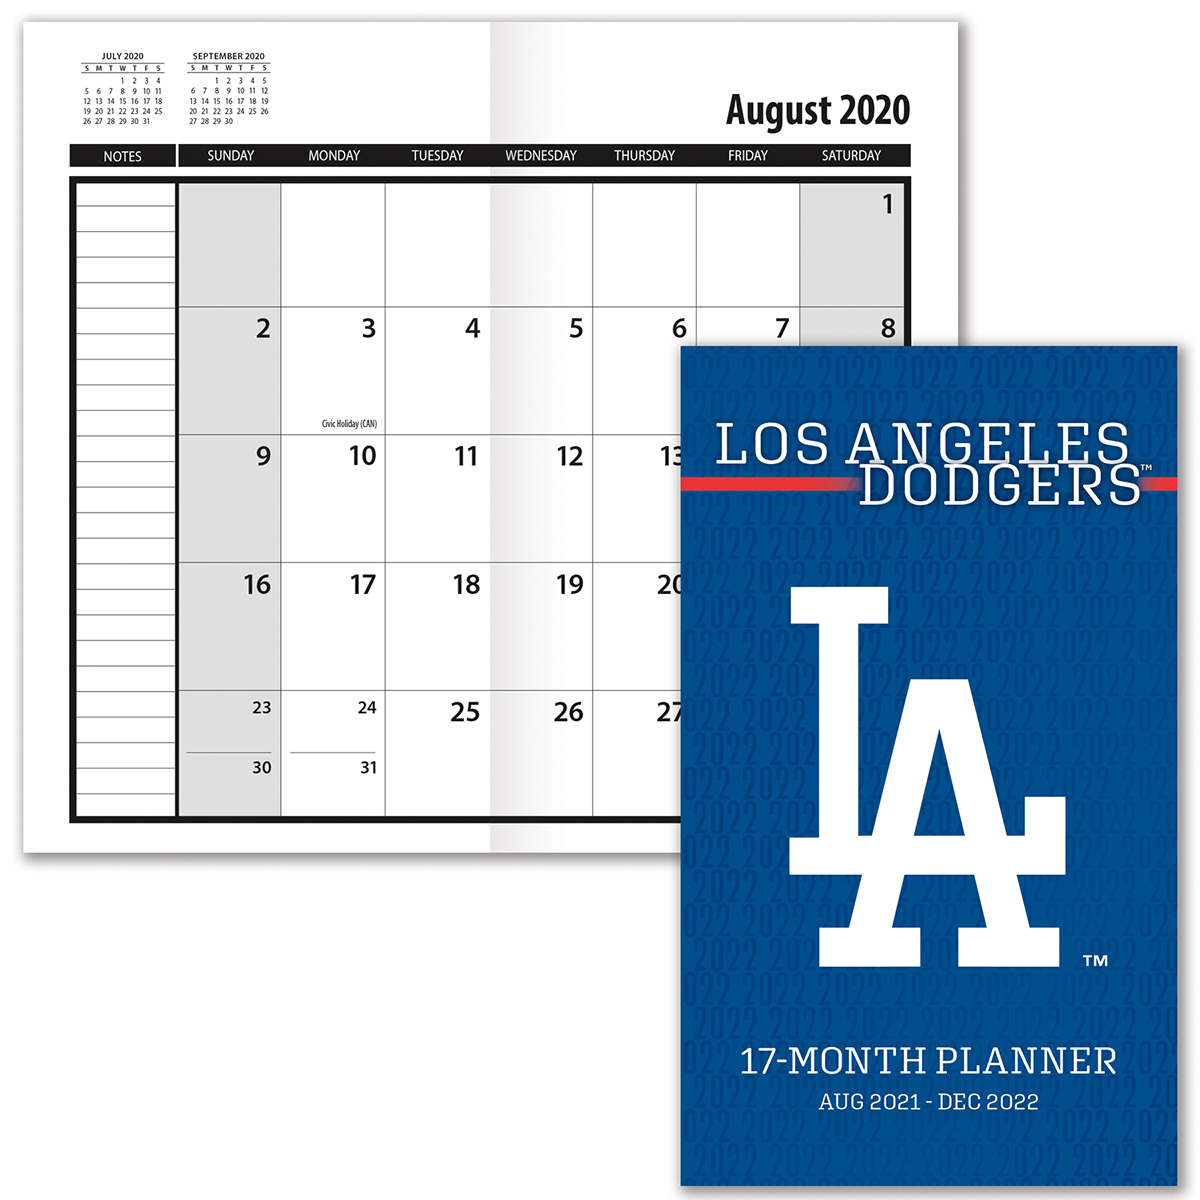 Los Angeles Dodgers 2019-20 Academic Planner